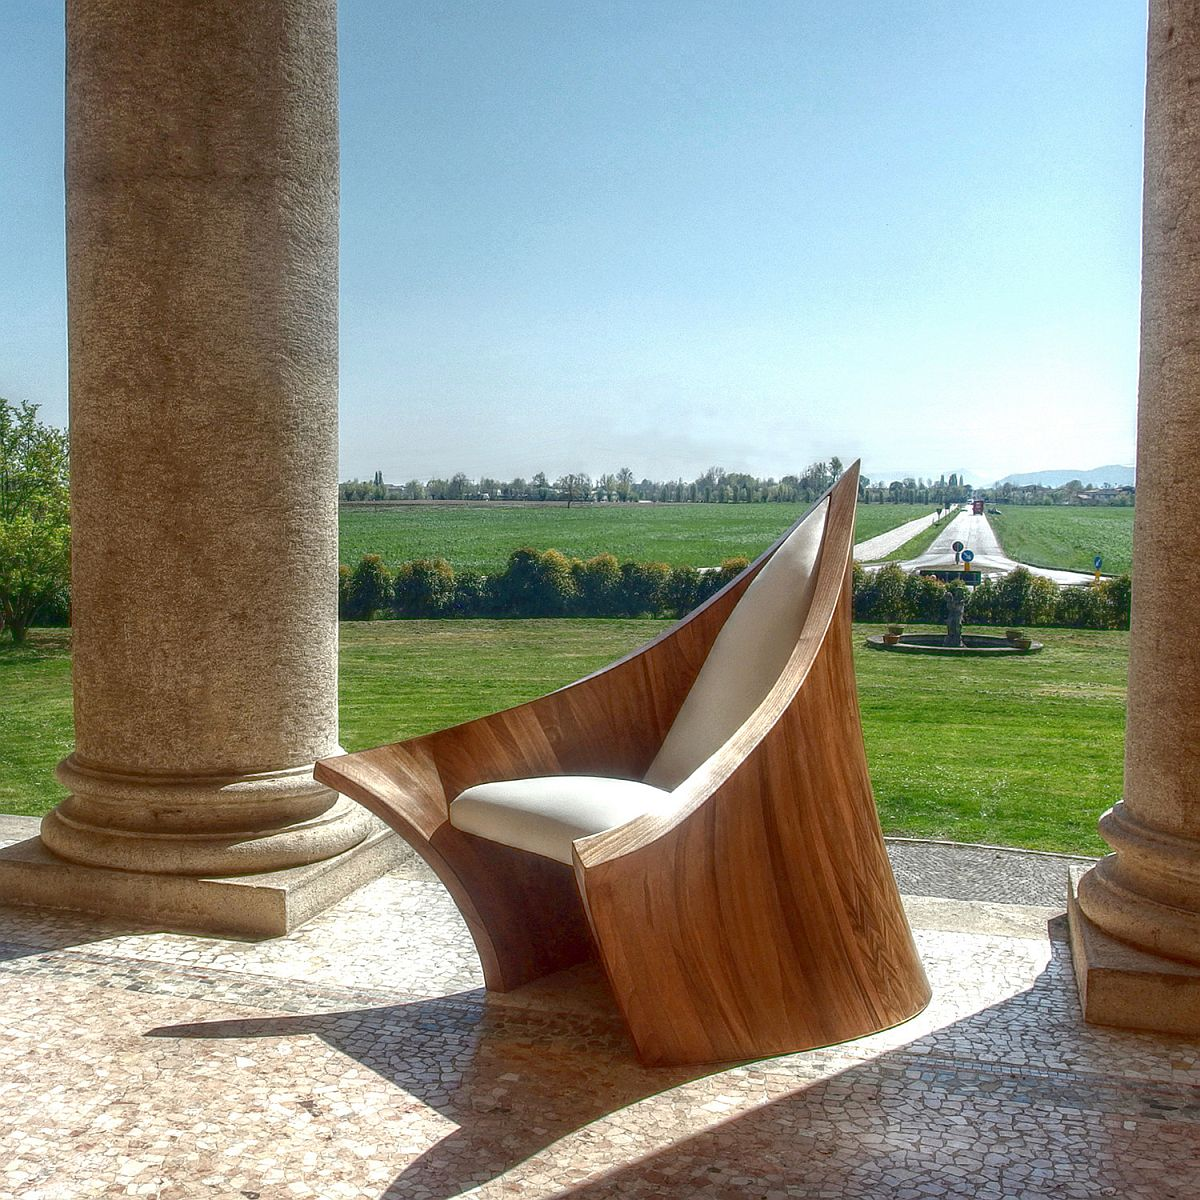 The New Medieval armchair designed by Massimo Farina